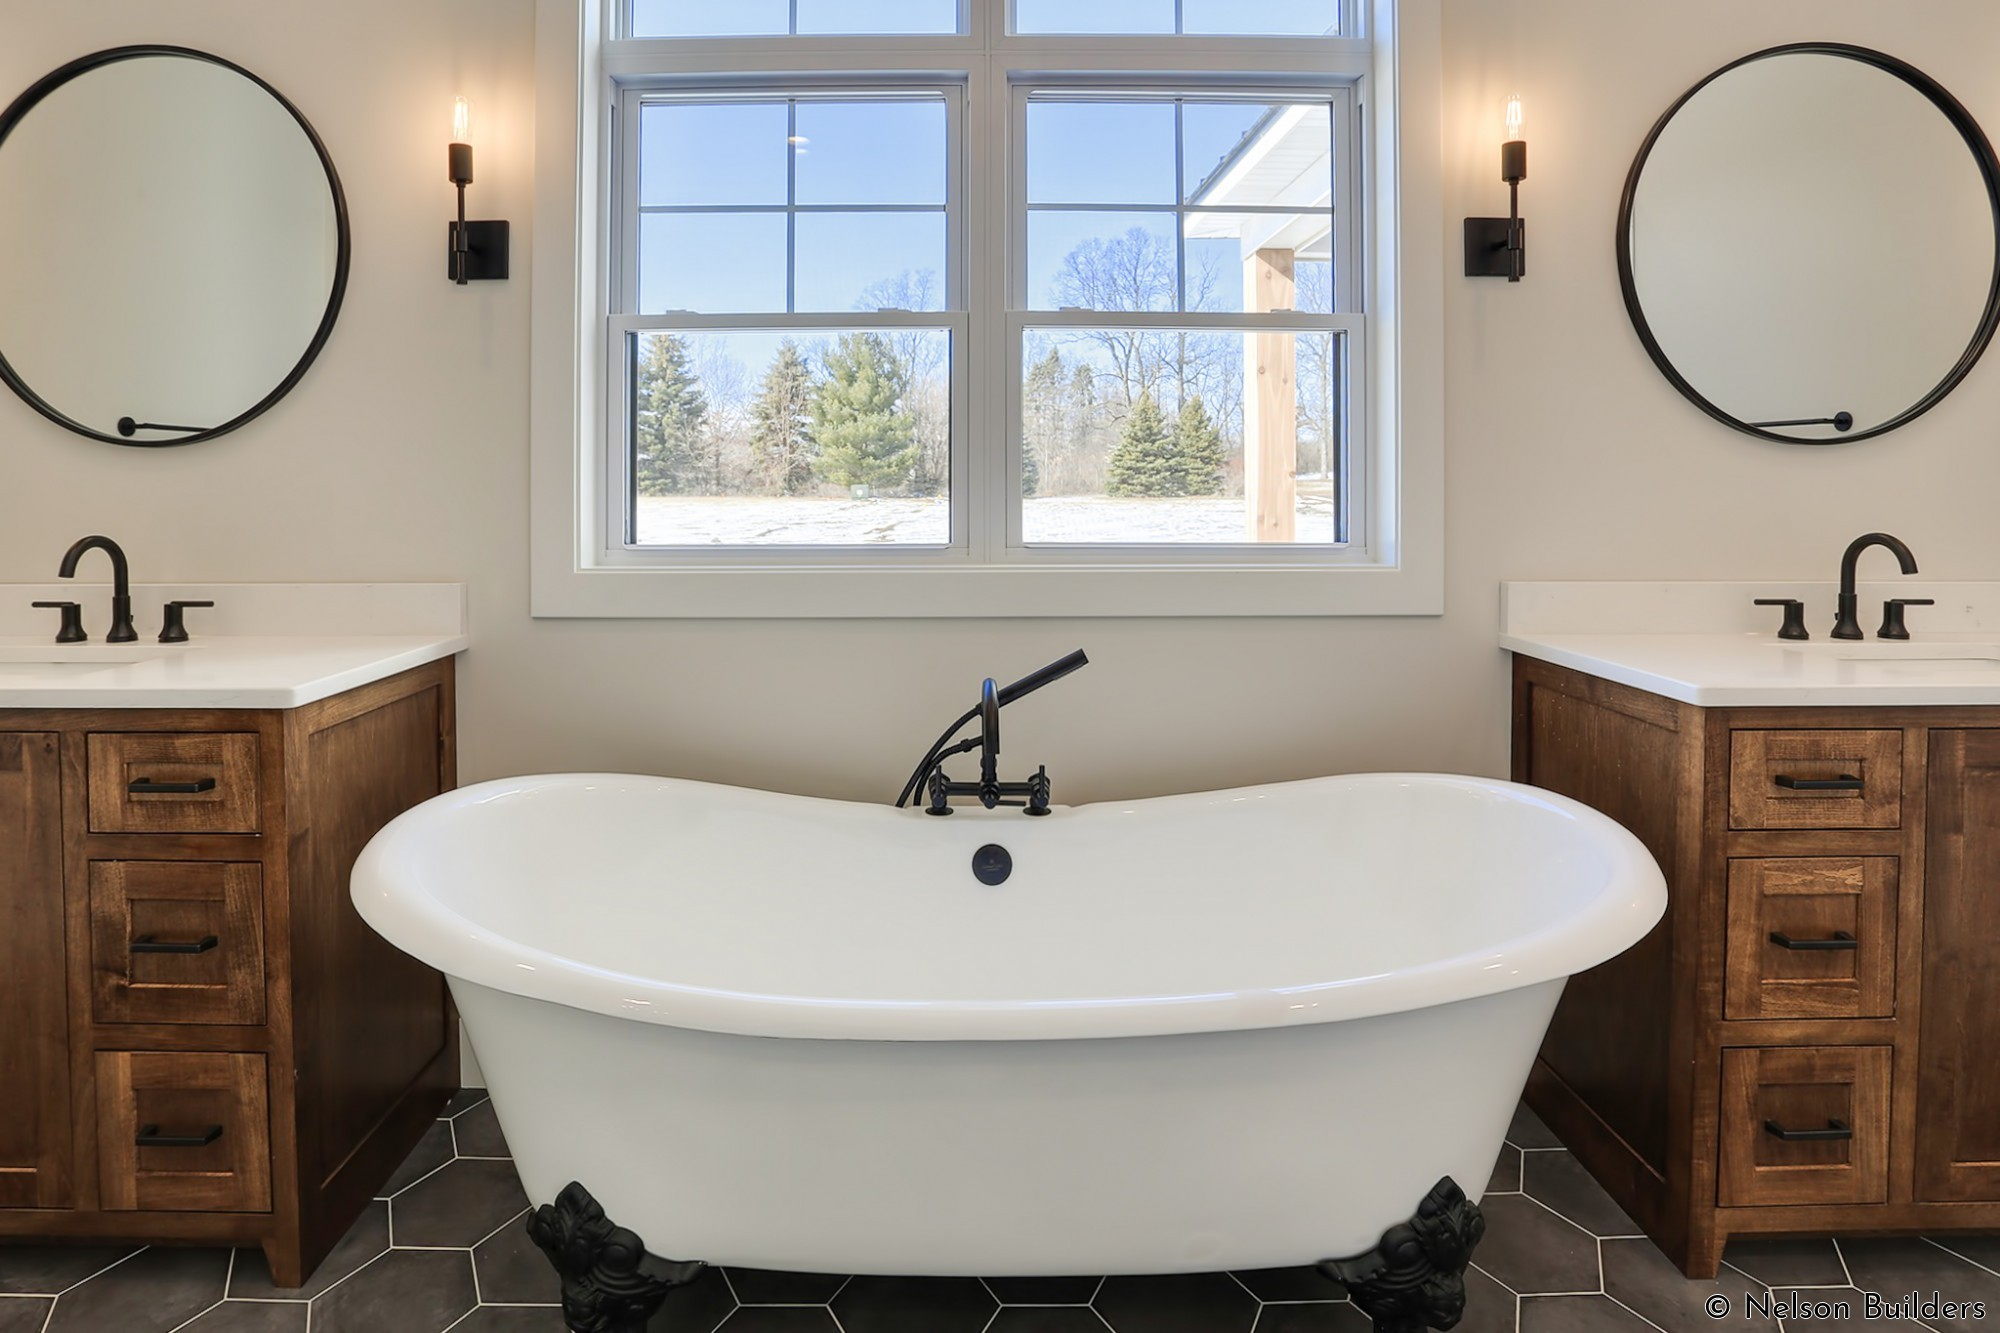 The modern clawfoot tub with black feet is the main accent of the master bath, complete with plenty of natural light.